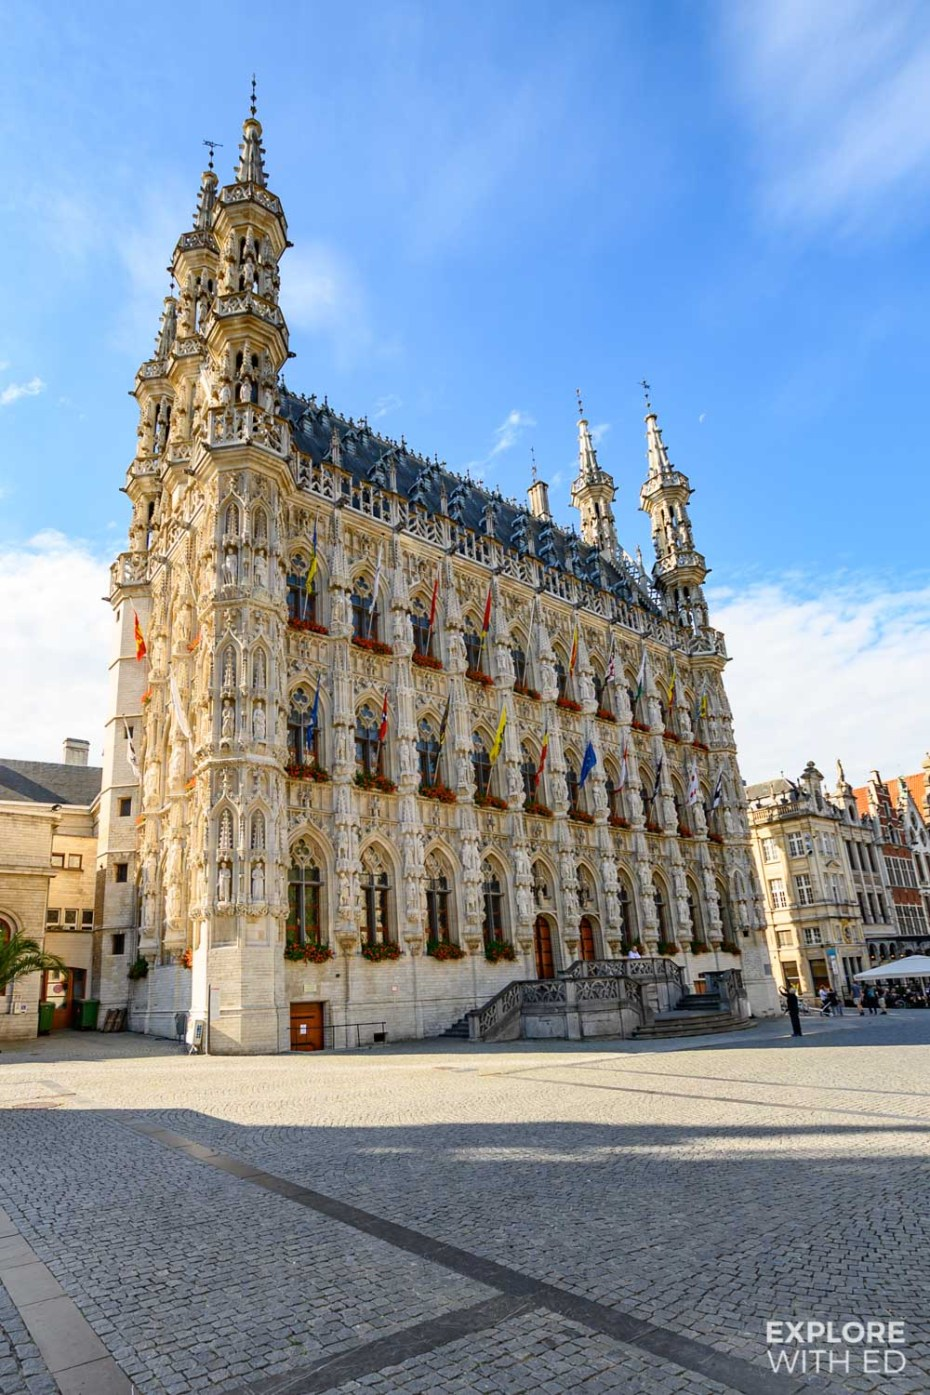 Leuven's beautiful Town Hall featuring 236 statues